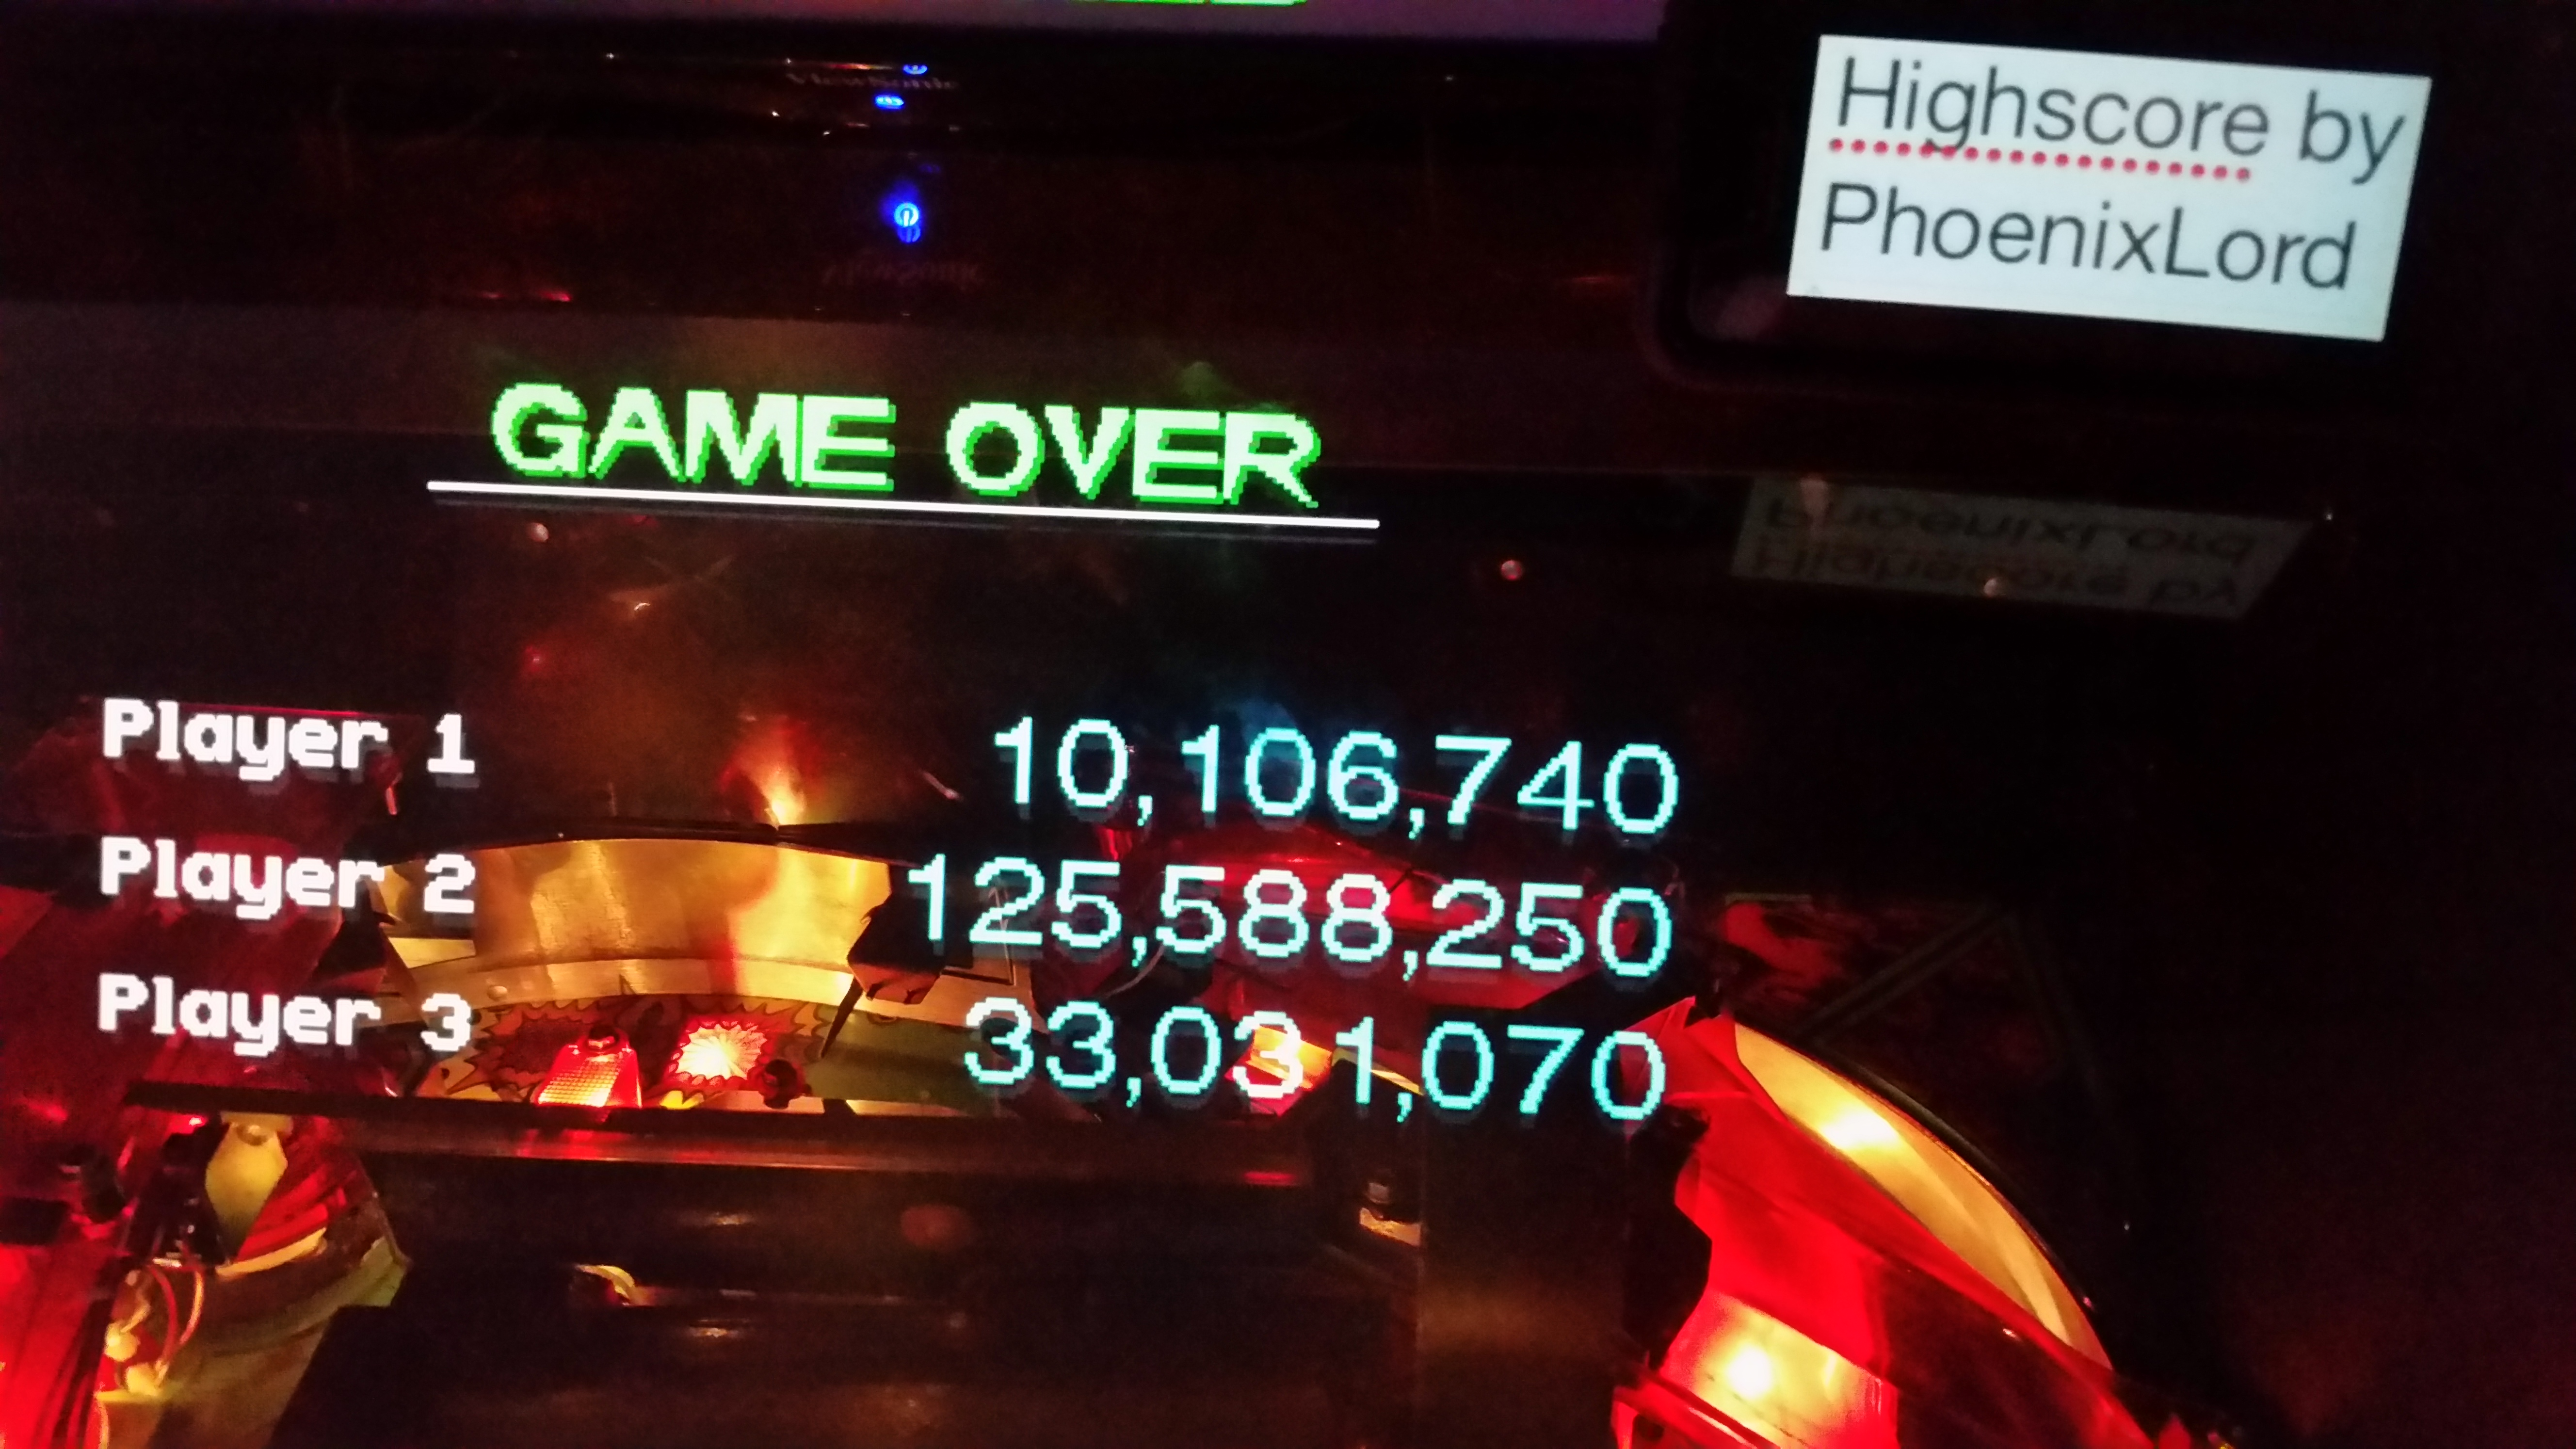 phoenixlord: Revenge From Mars (Pinball: 3 Balls) 125,588,250 points on 2017-03-03 21:28:52